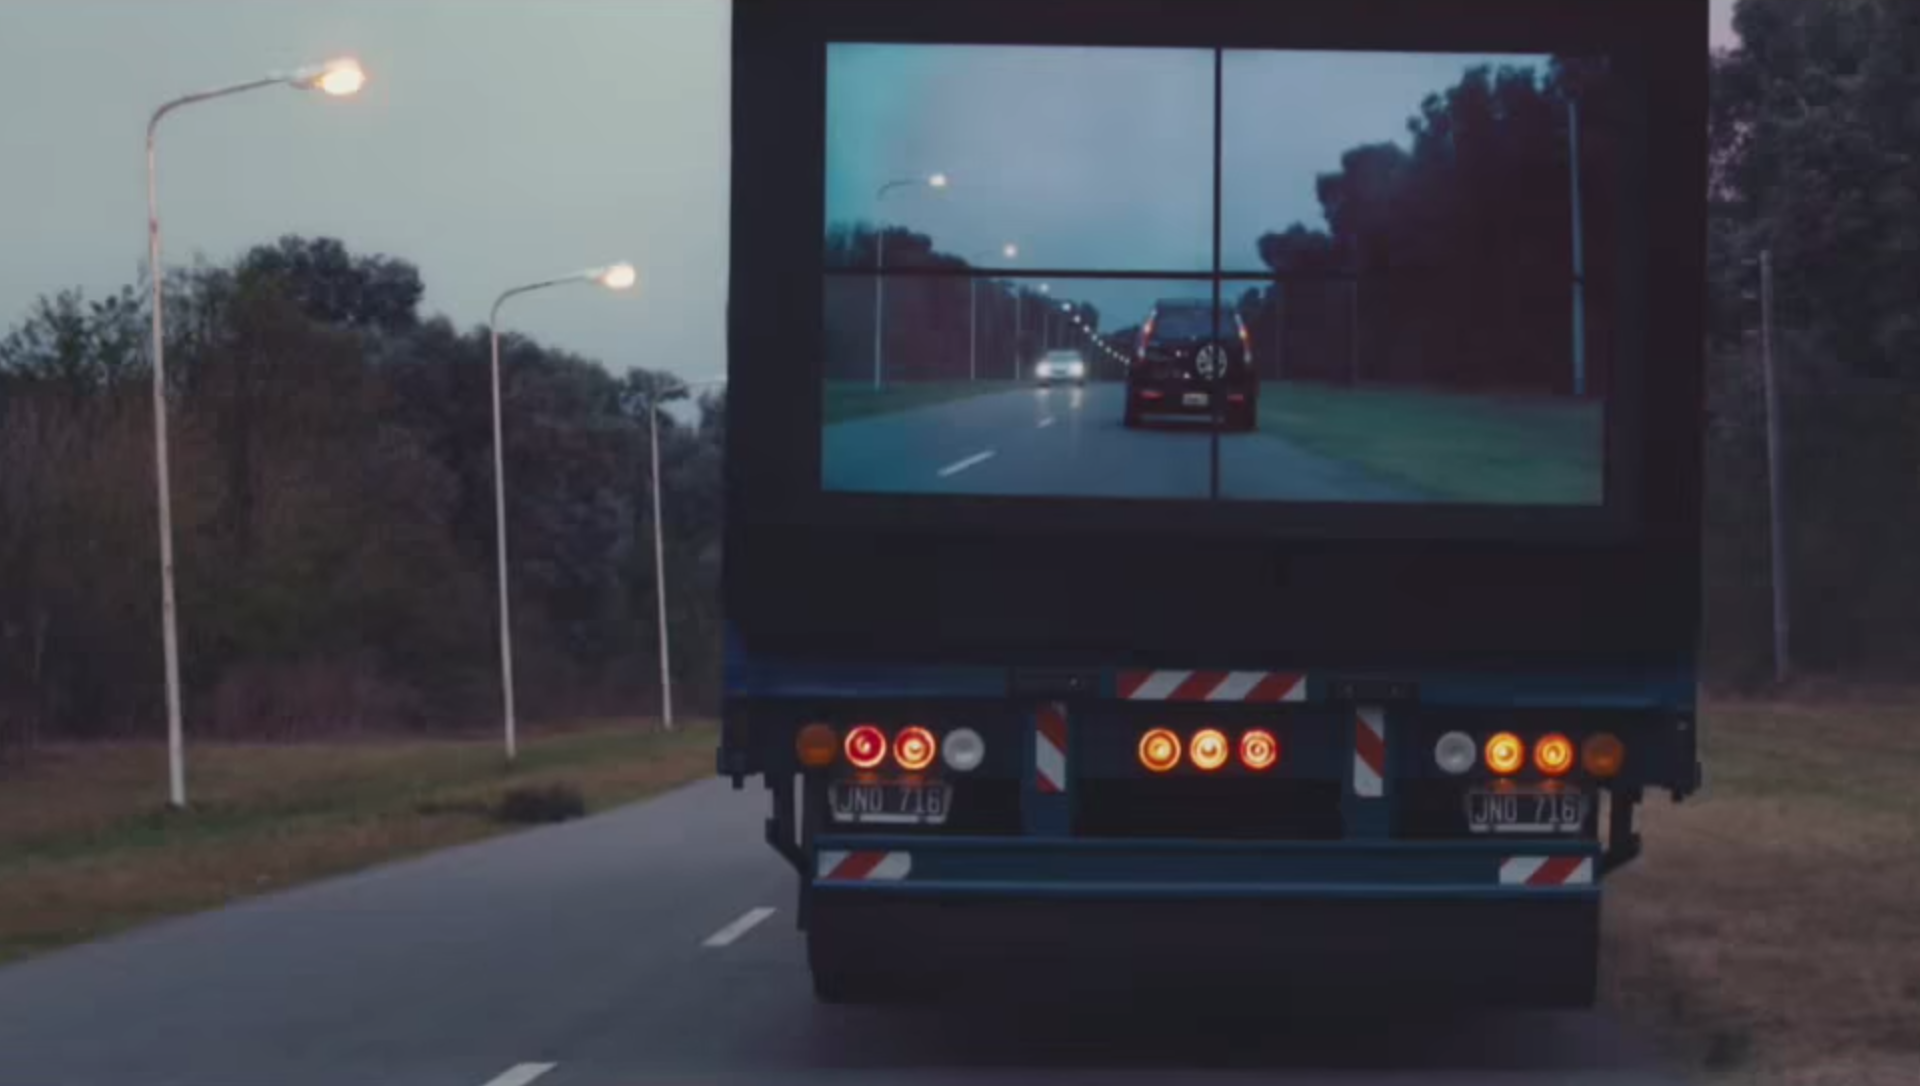 Samsung S Safety Truck Aims To End Blind Spot Behind Big Rigs